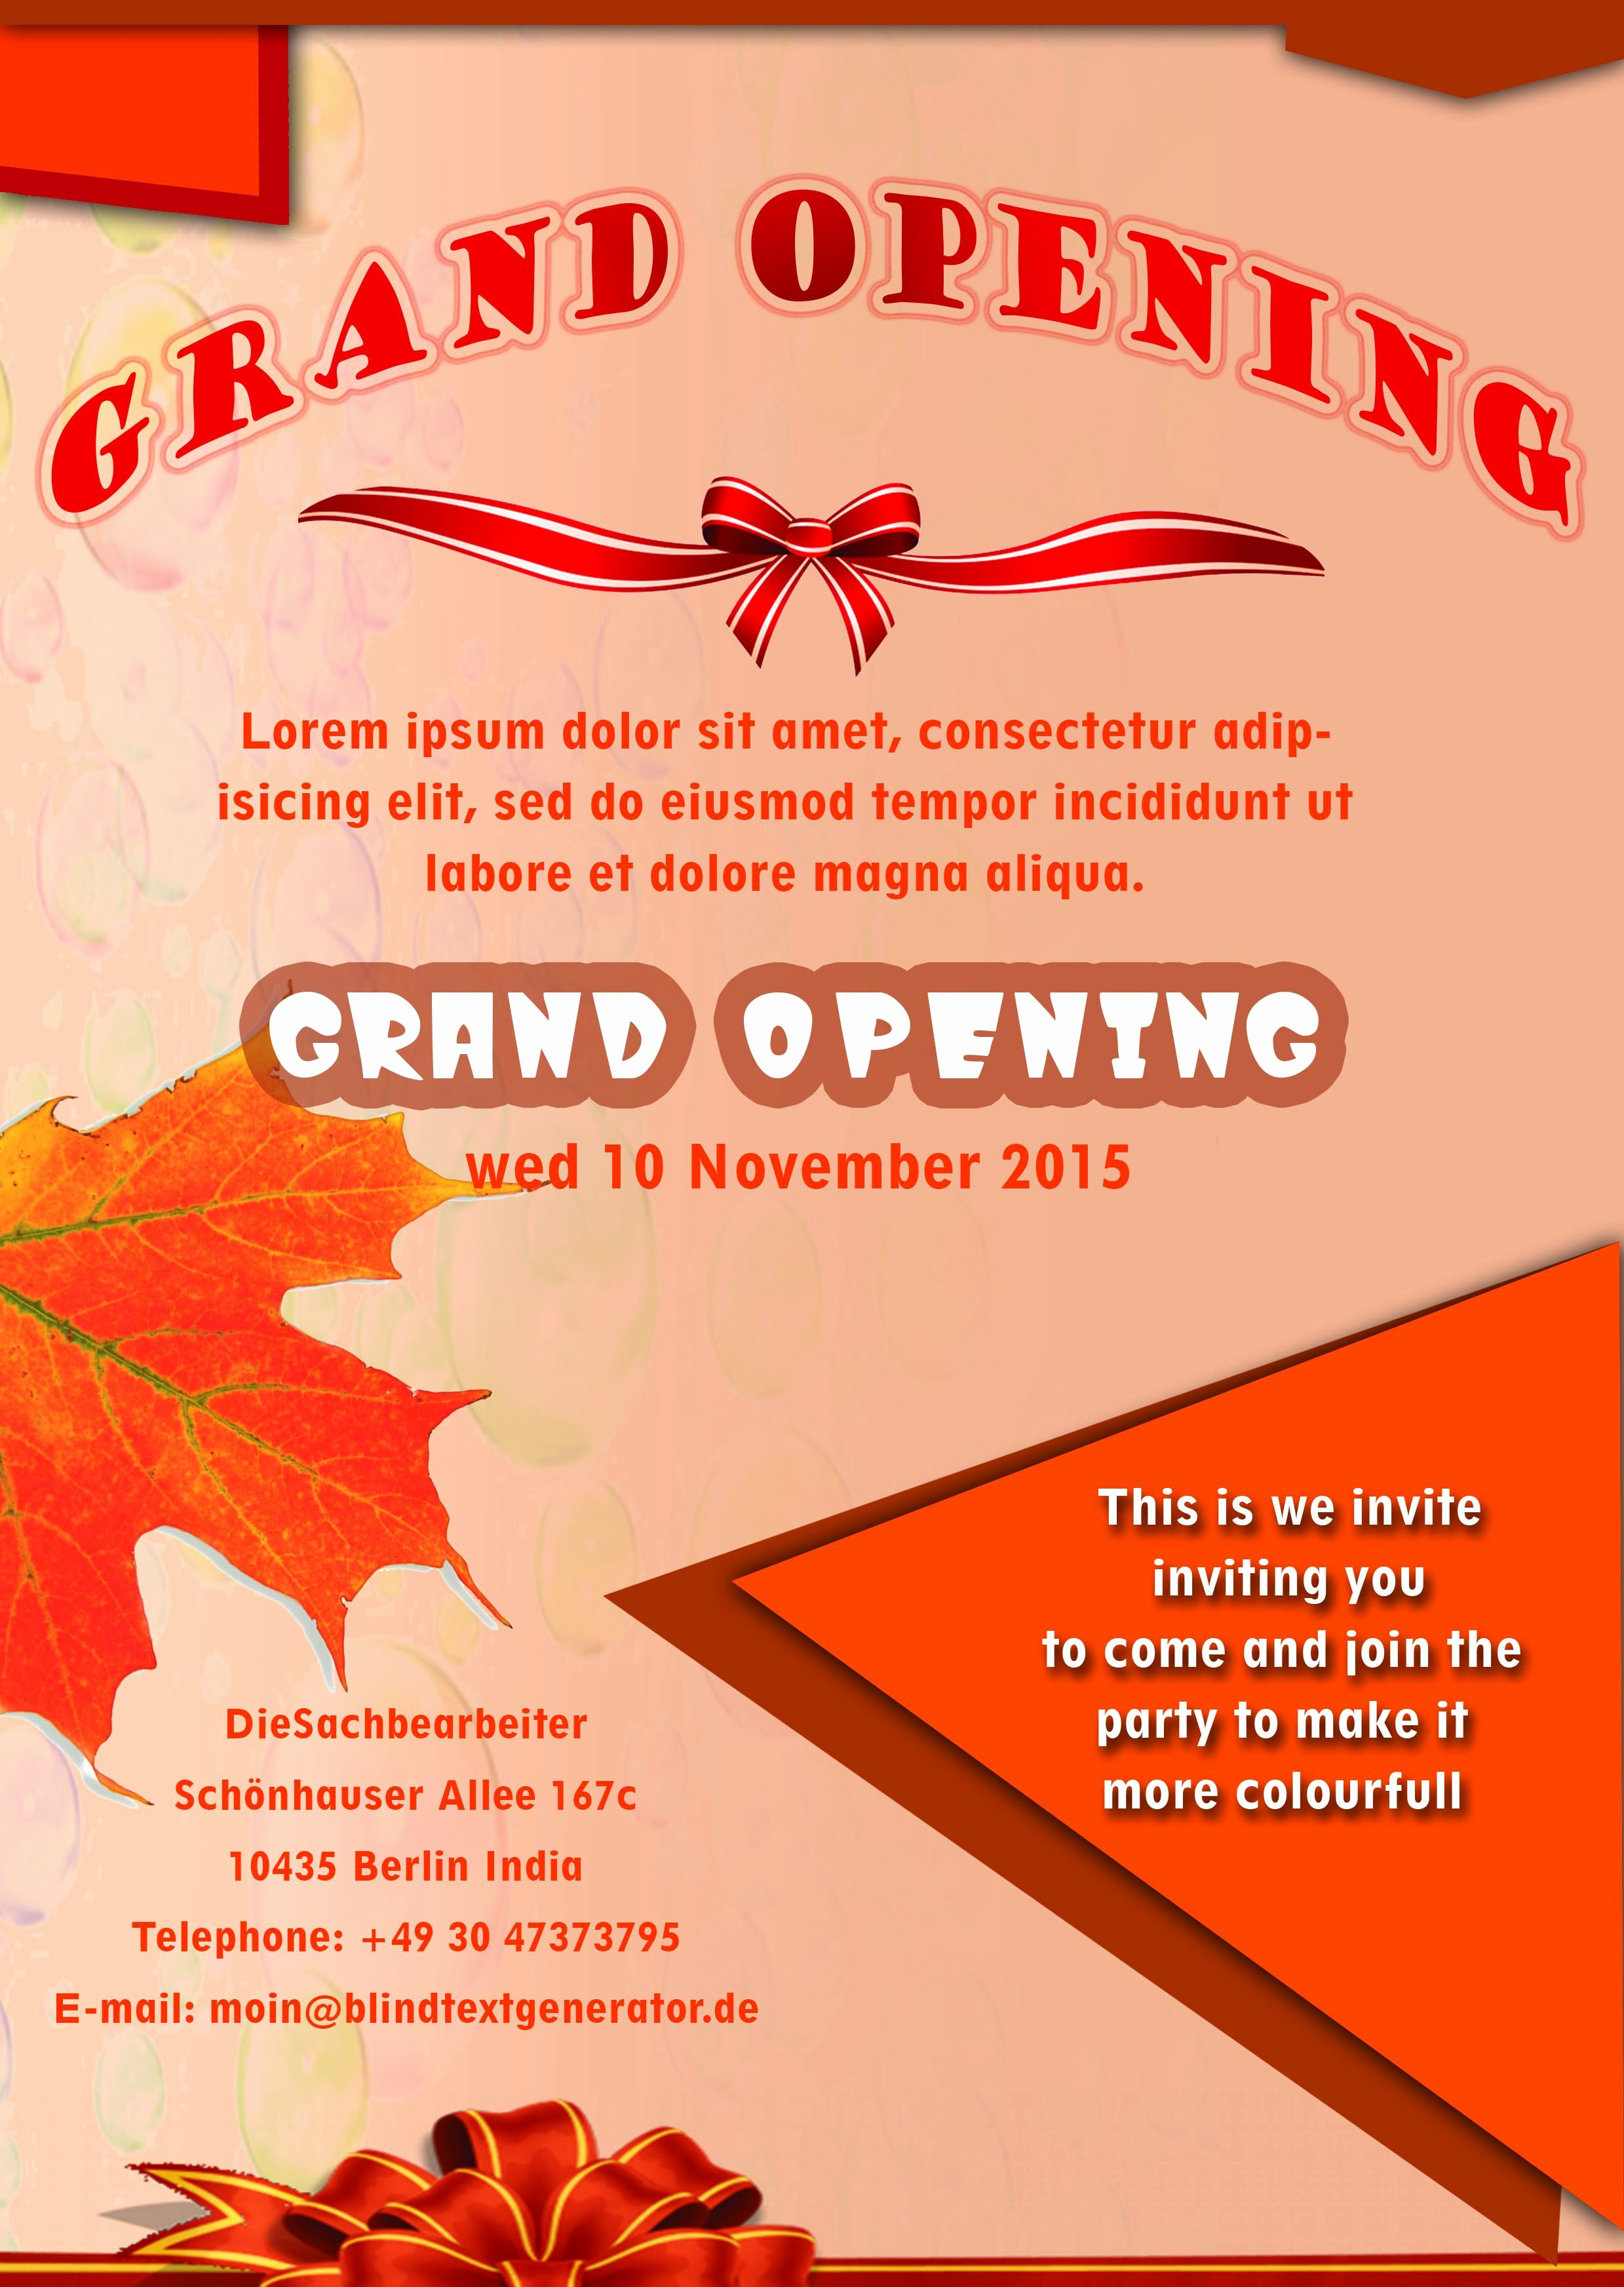 Free Grand Opening Flyer Template Beautiful 20 Grand Opening Flyer Templates Free Demplates